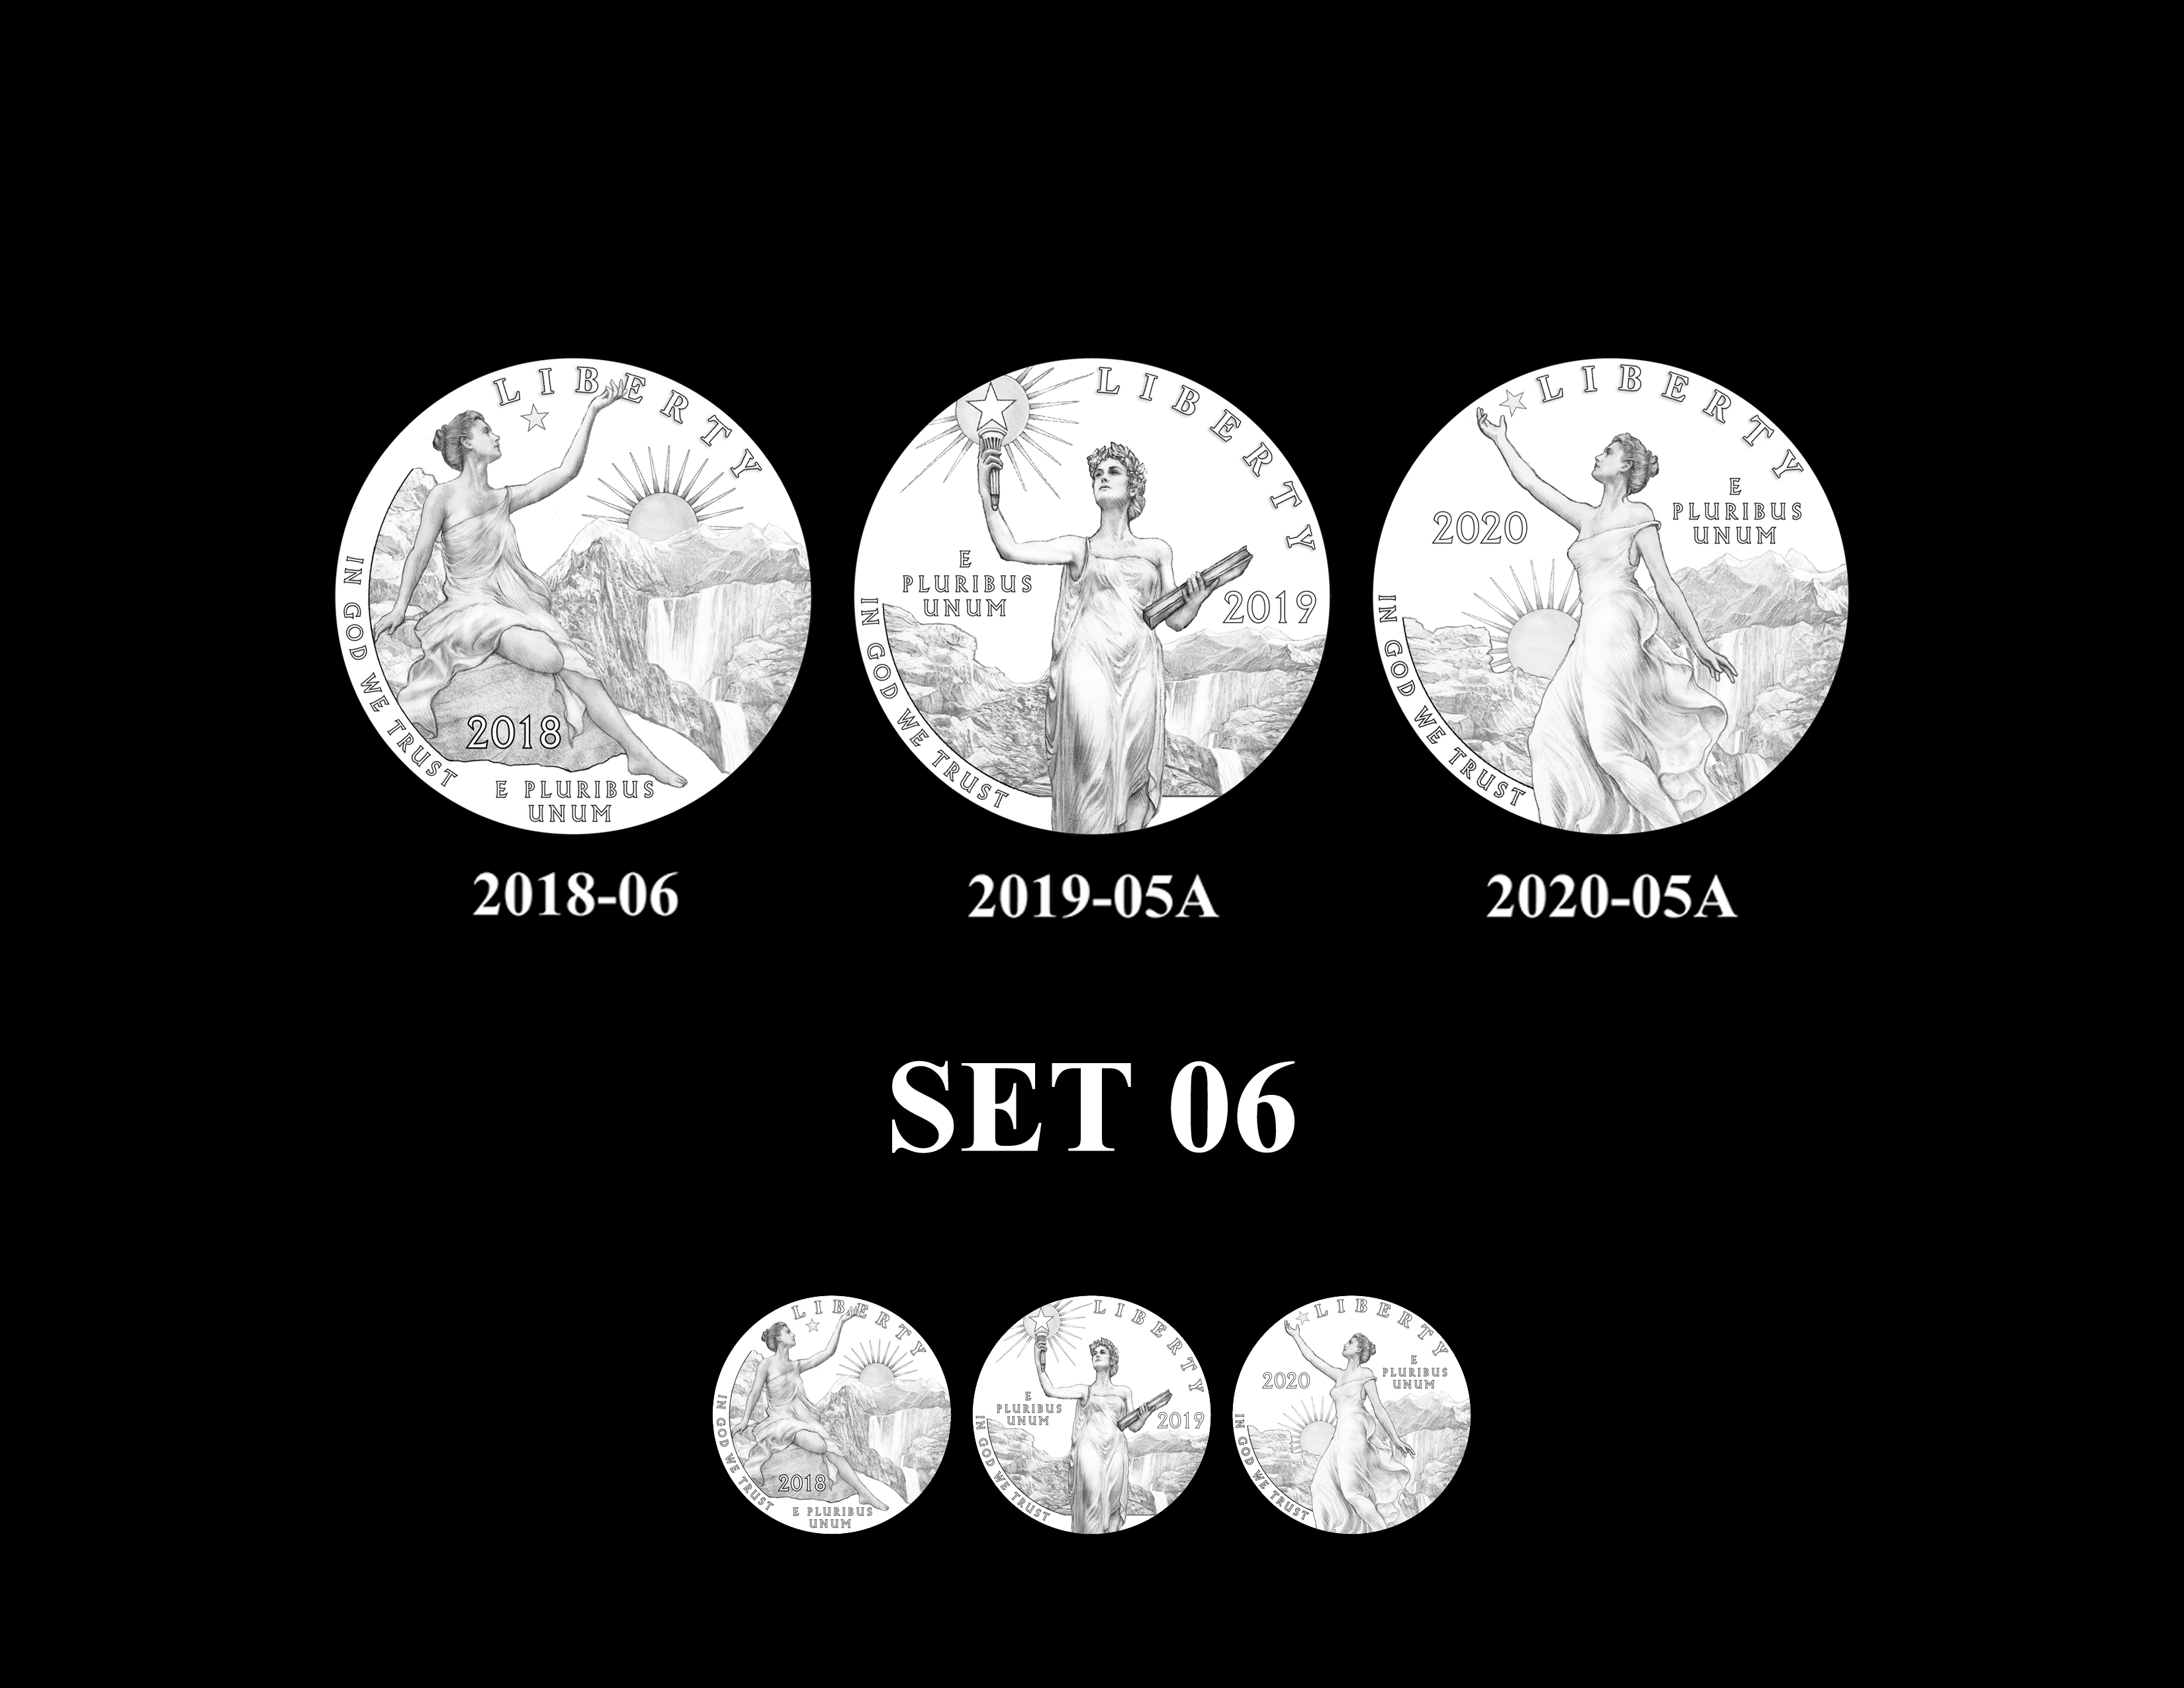 SET 06 - 2018 2019 and 2020 American Eagle Platinum Proof Program